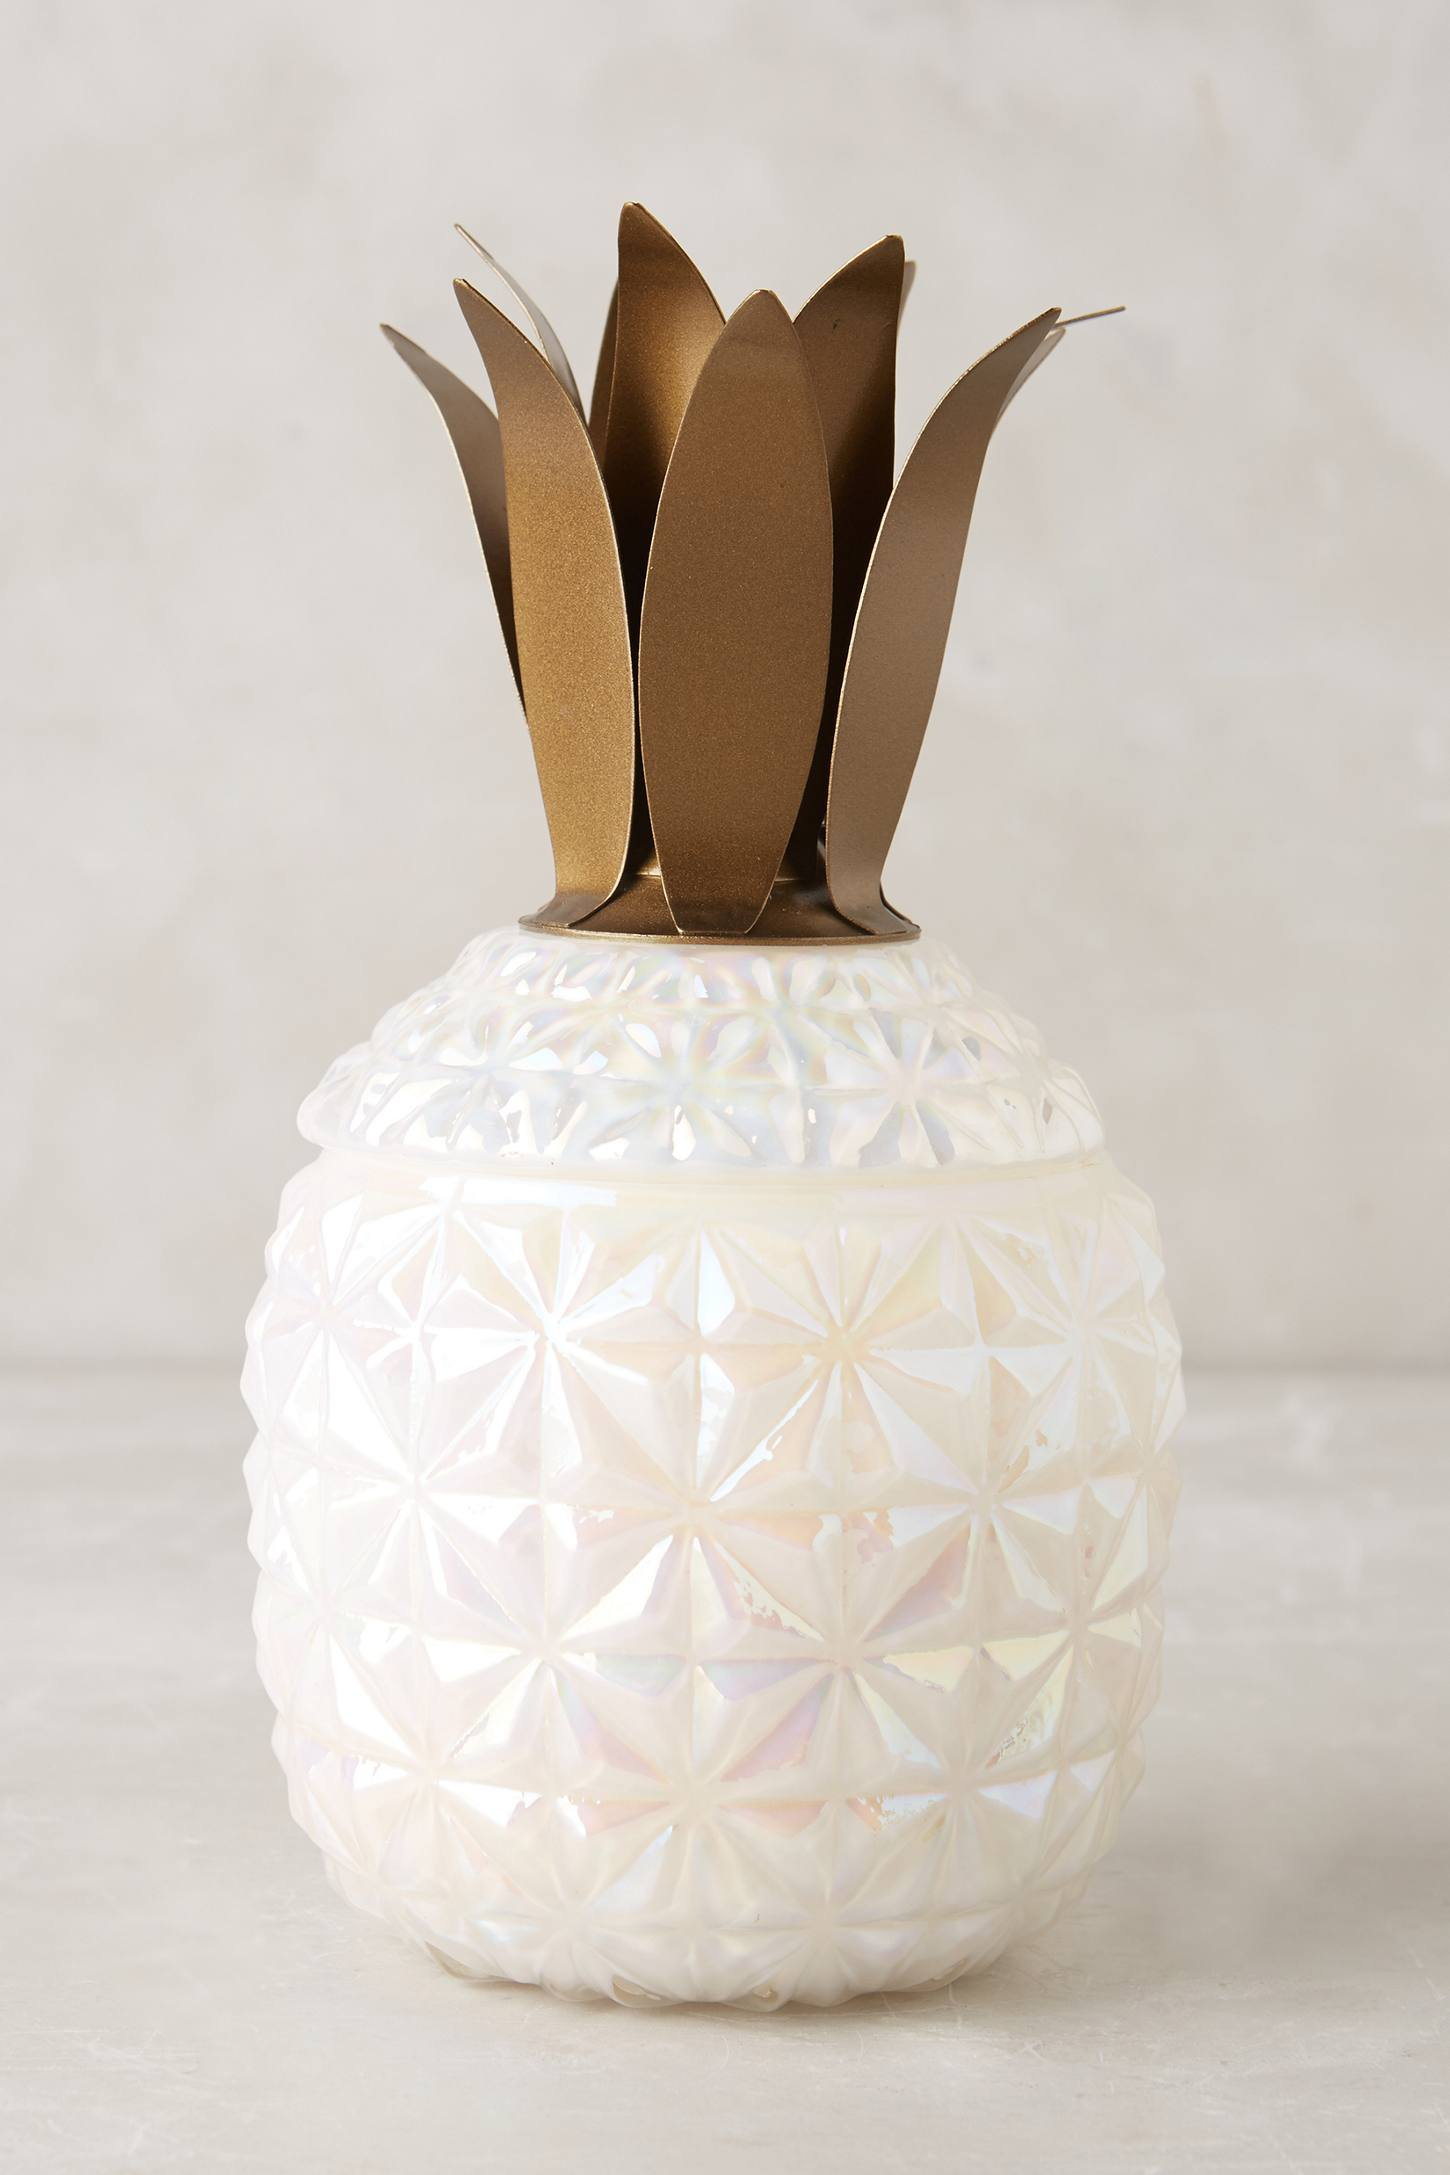 Pineapple candle from Anthropologie